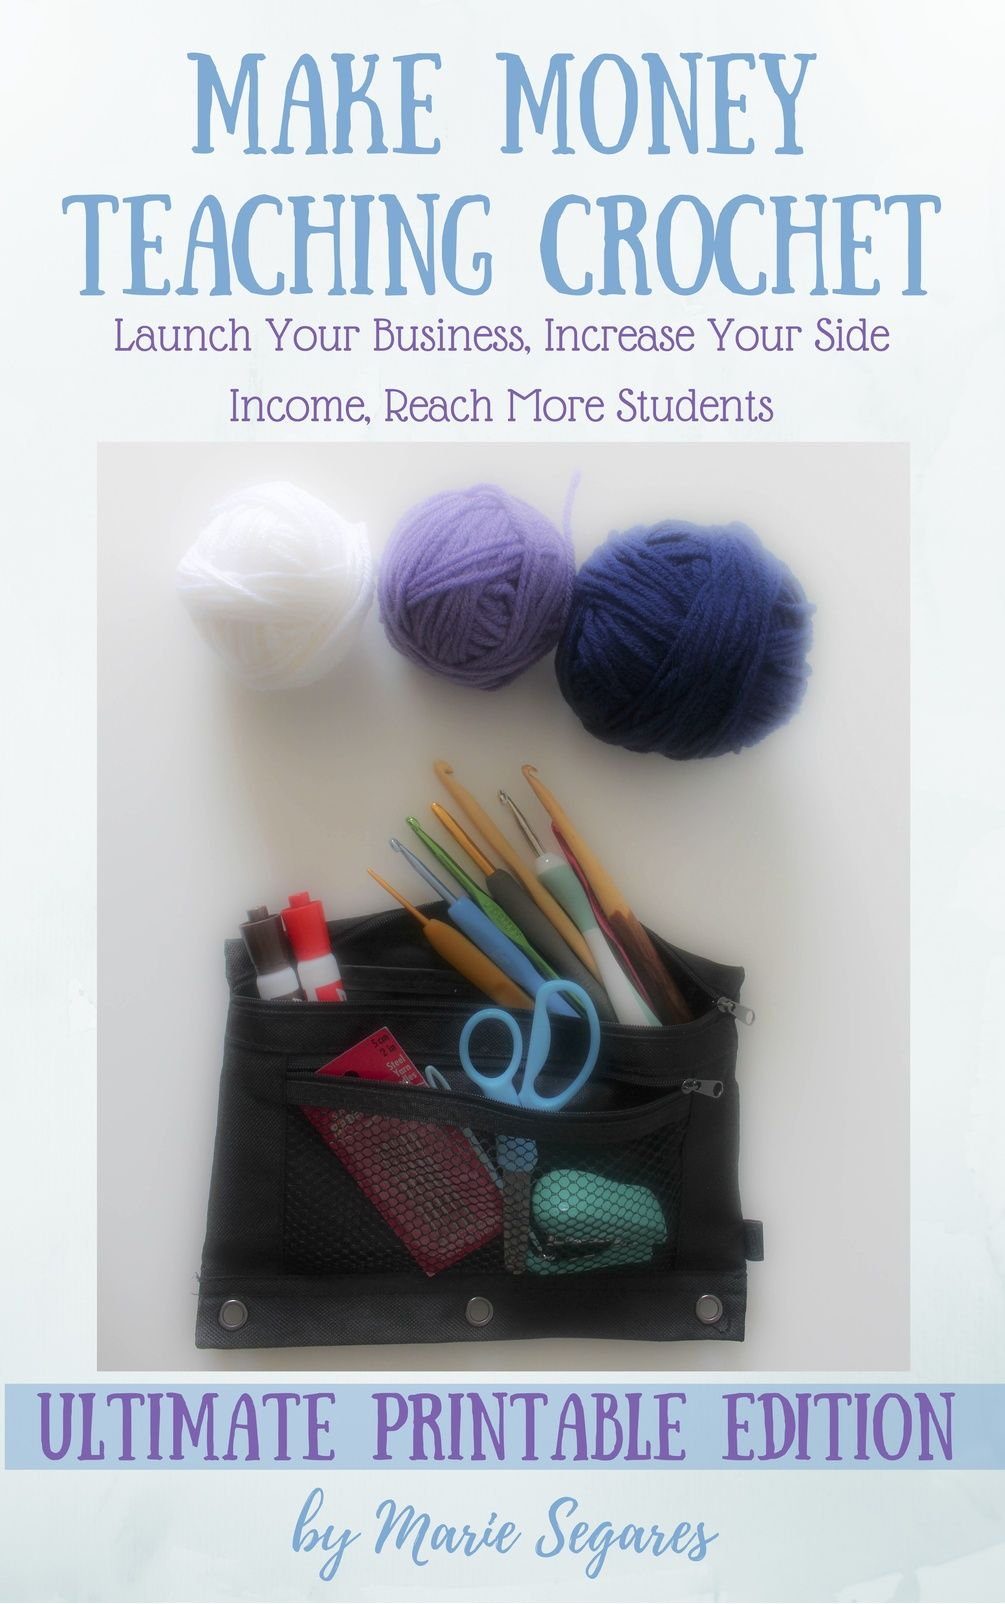 Make Money Teaching Crochet: Launch Your Business, Increase Your Side Income, Reach More Students (Ultimate Printable Edition) #crochetformoney